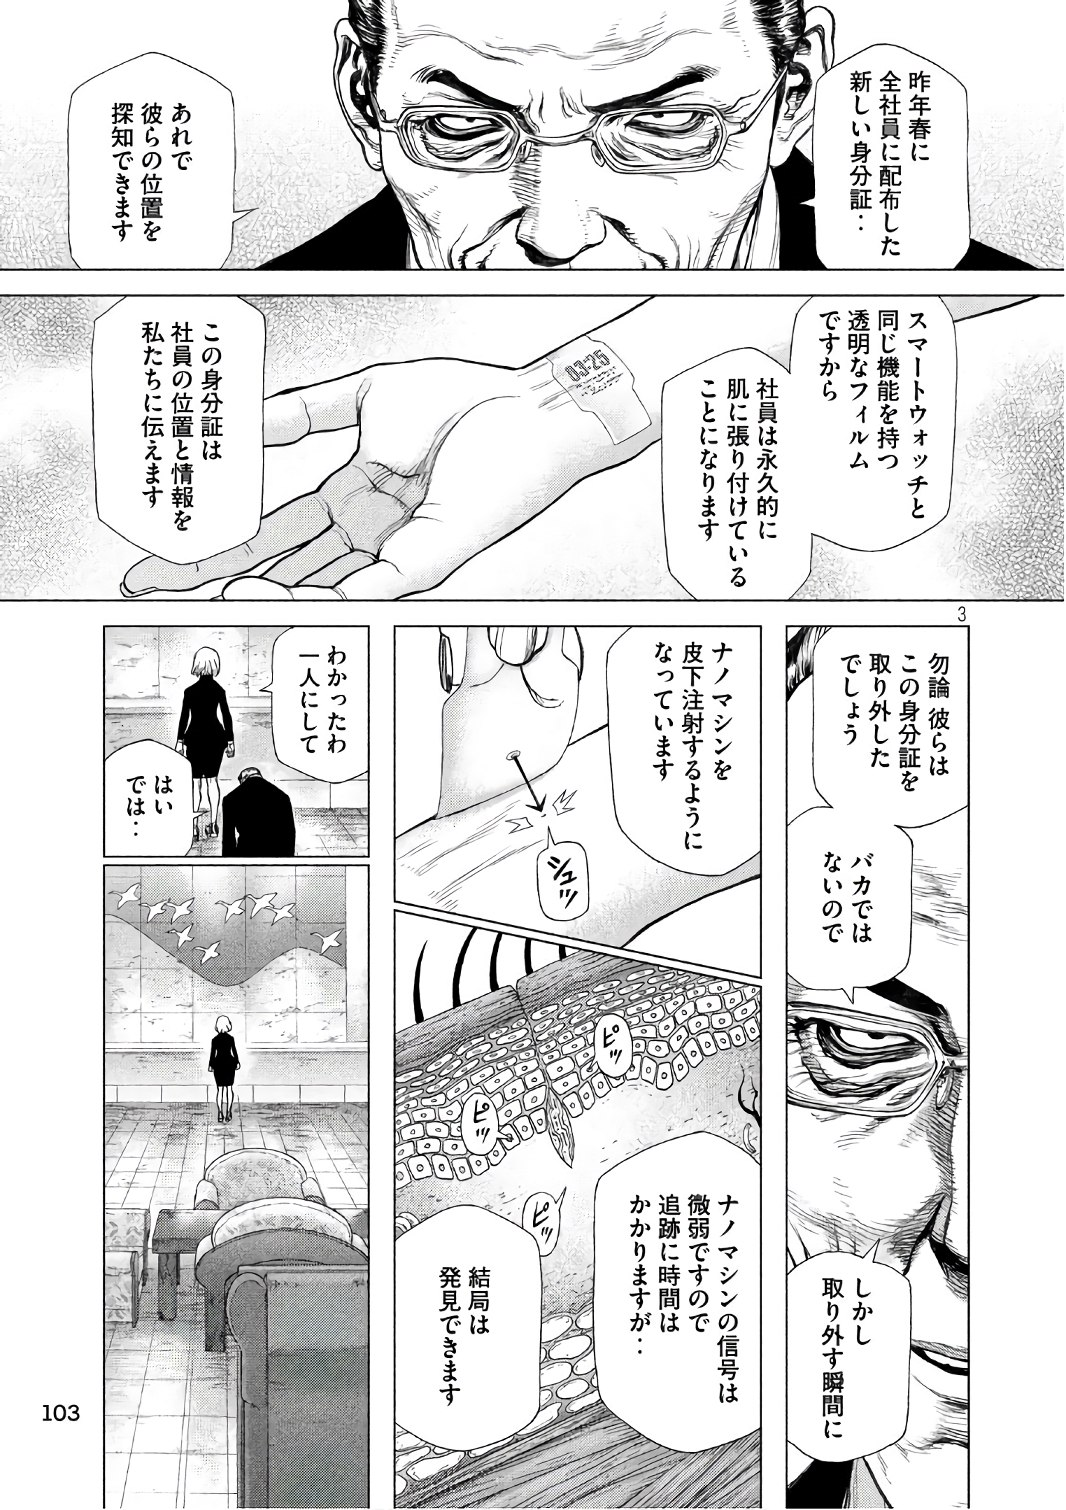 Origin - Raw Chapter 67 - LHScan.net